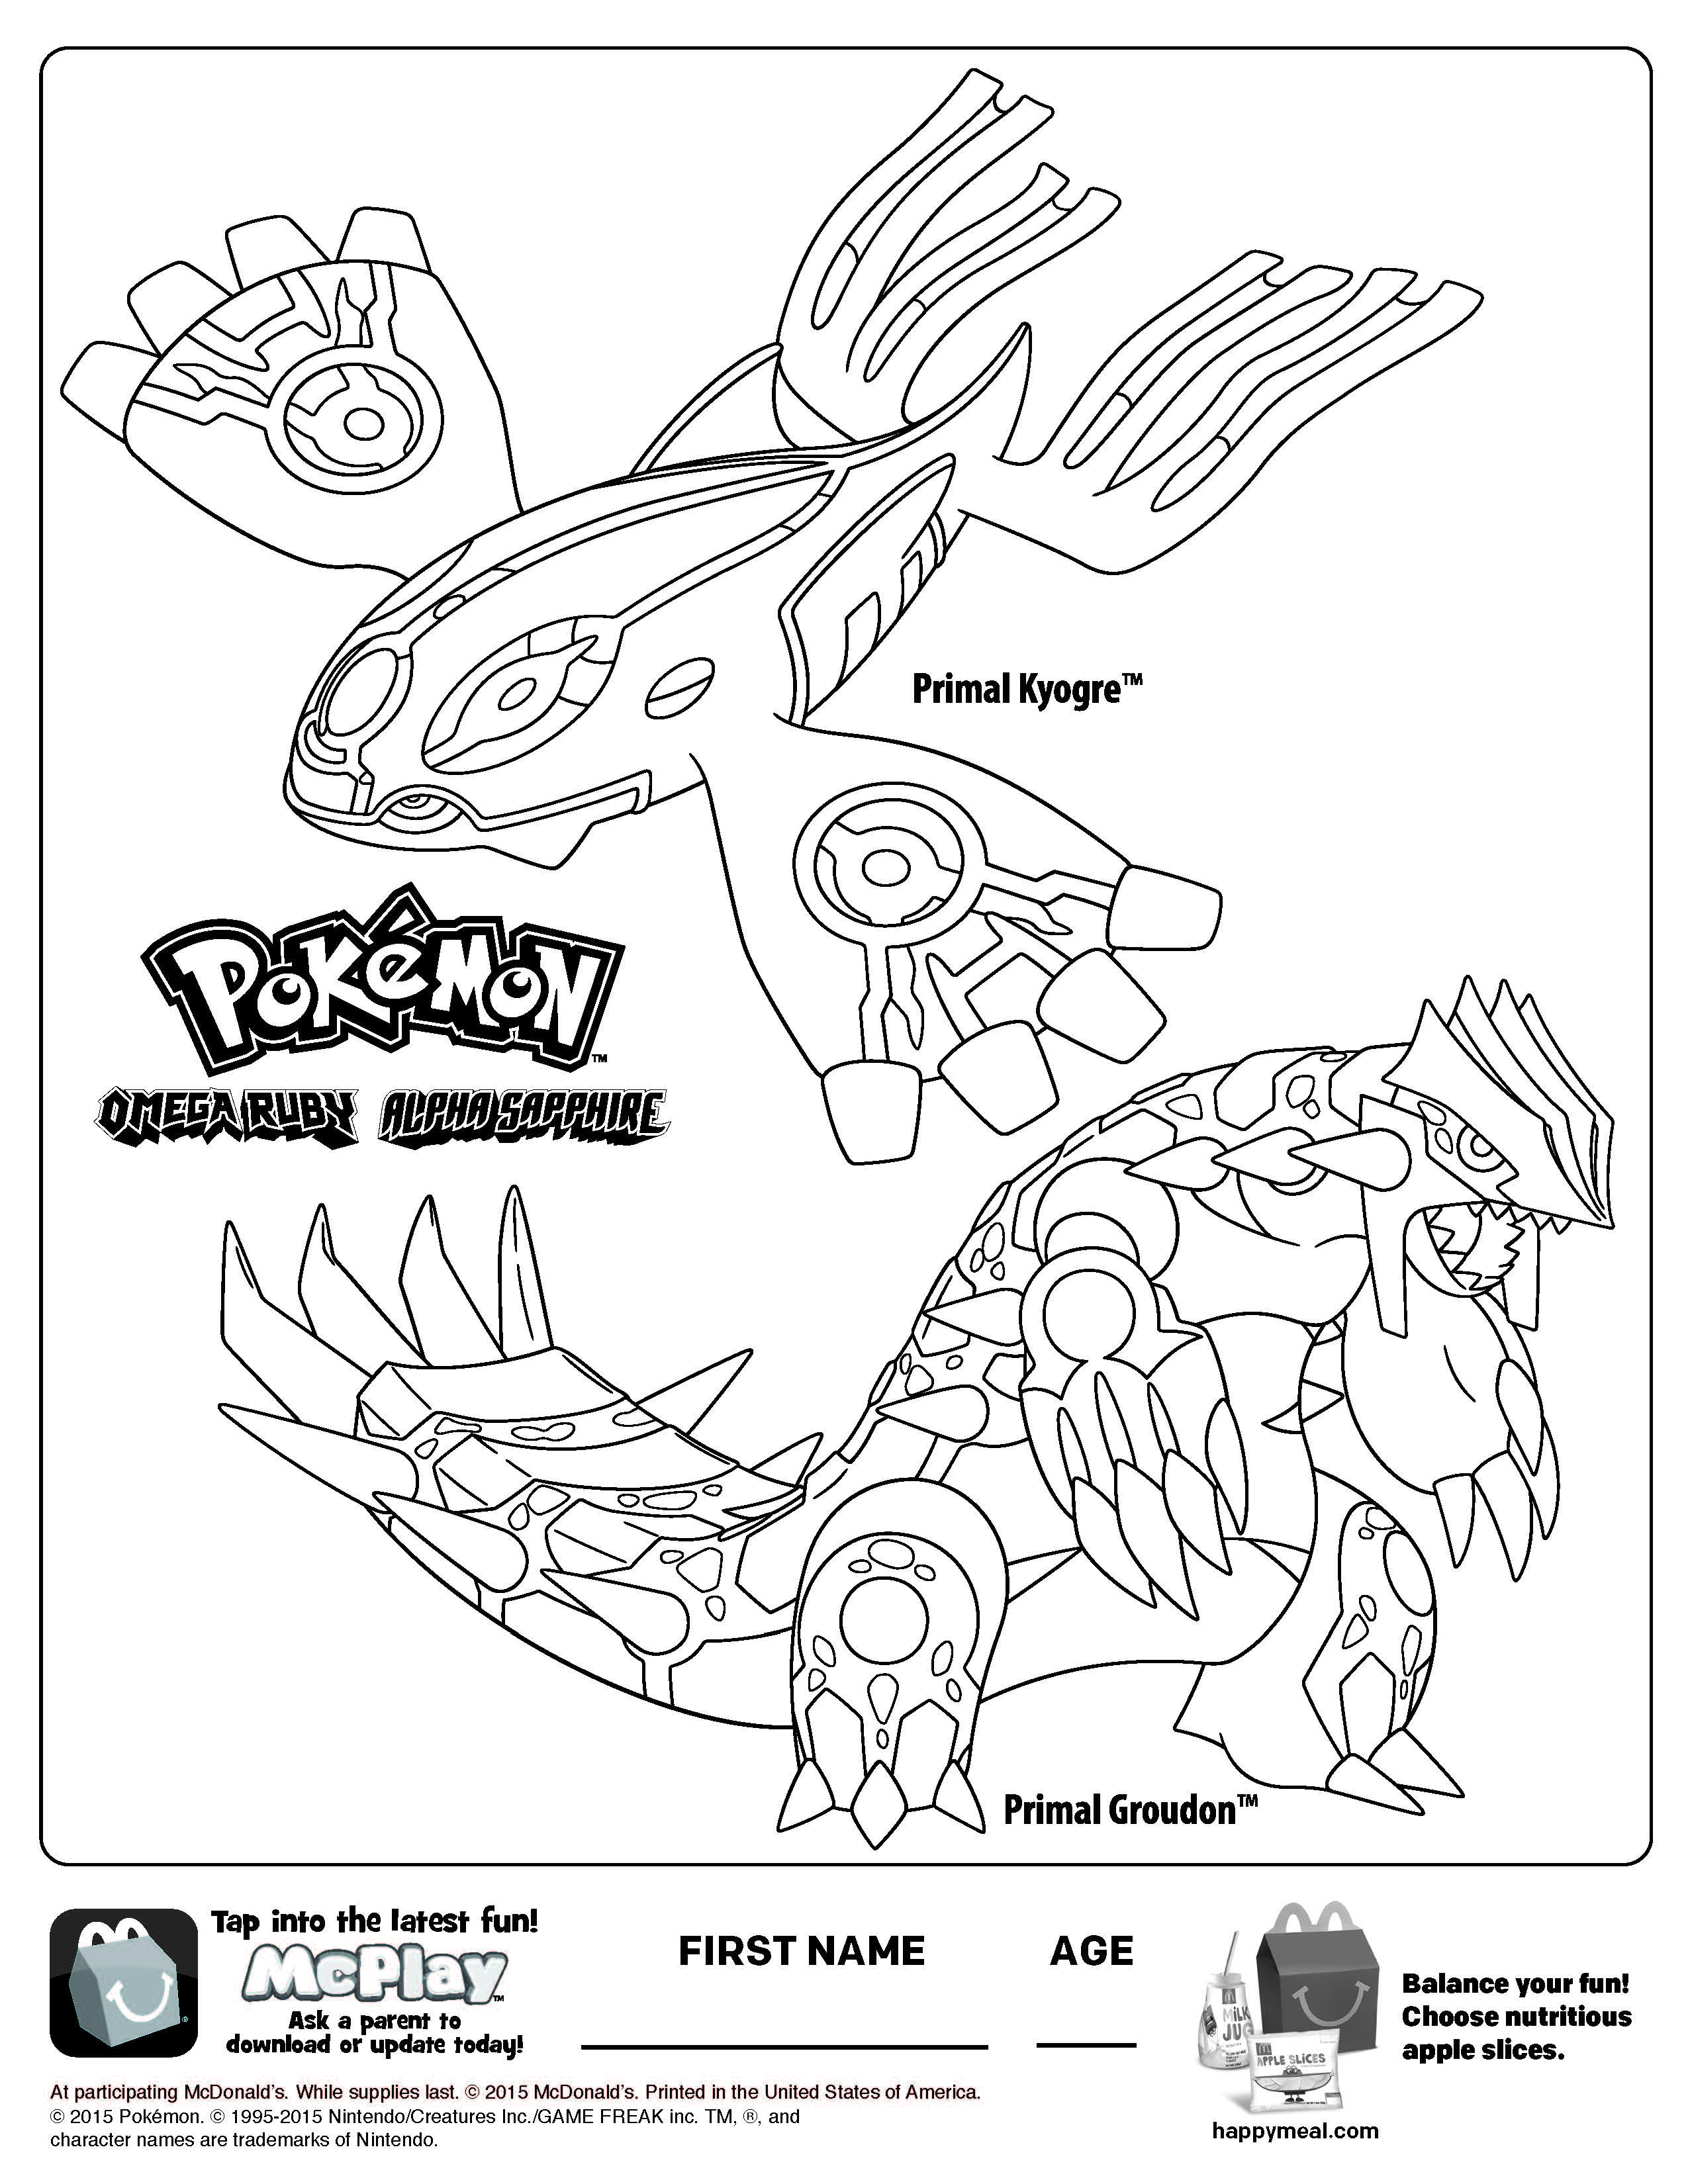 mcdonalds coloring pages Free McDonalds Happy Meal Pokemon Printable Coloring Page  mcdonalds coloring pages